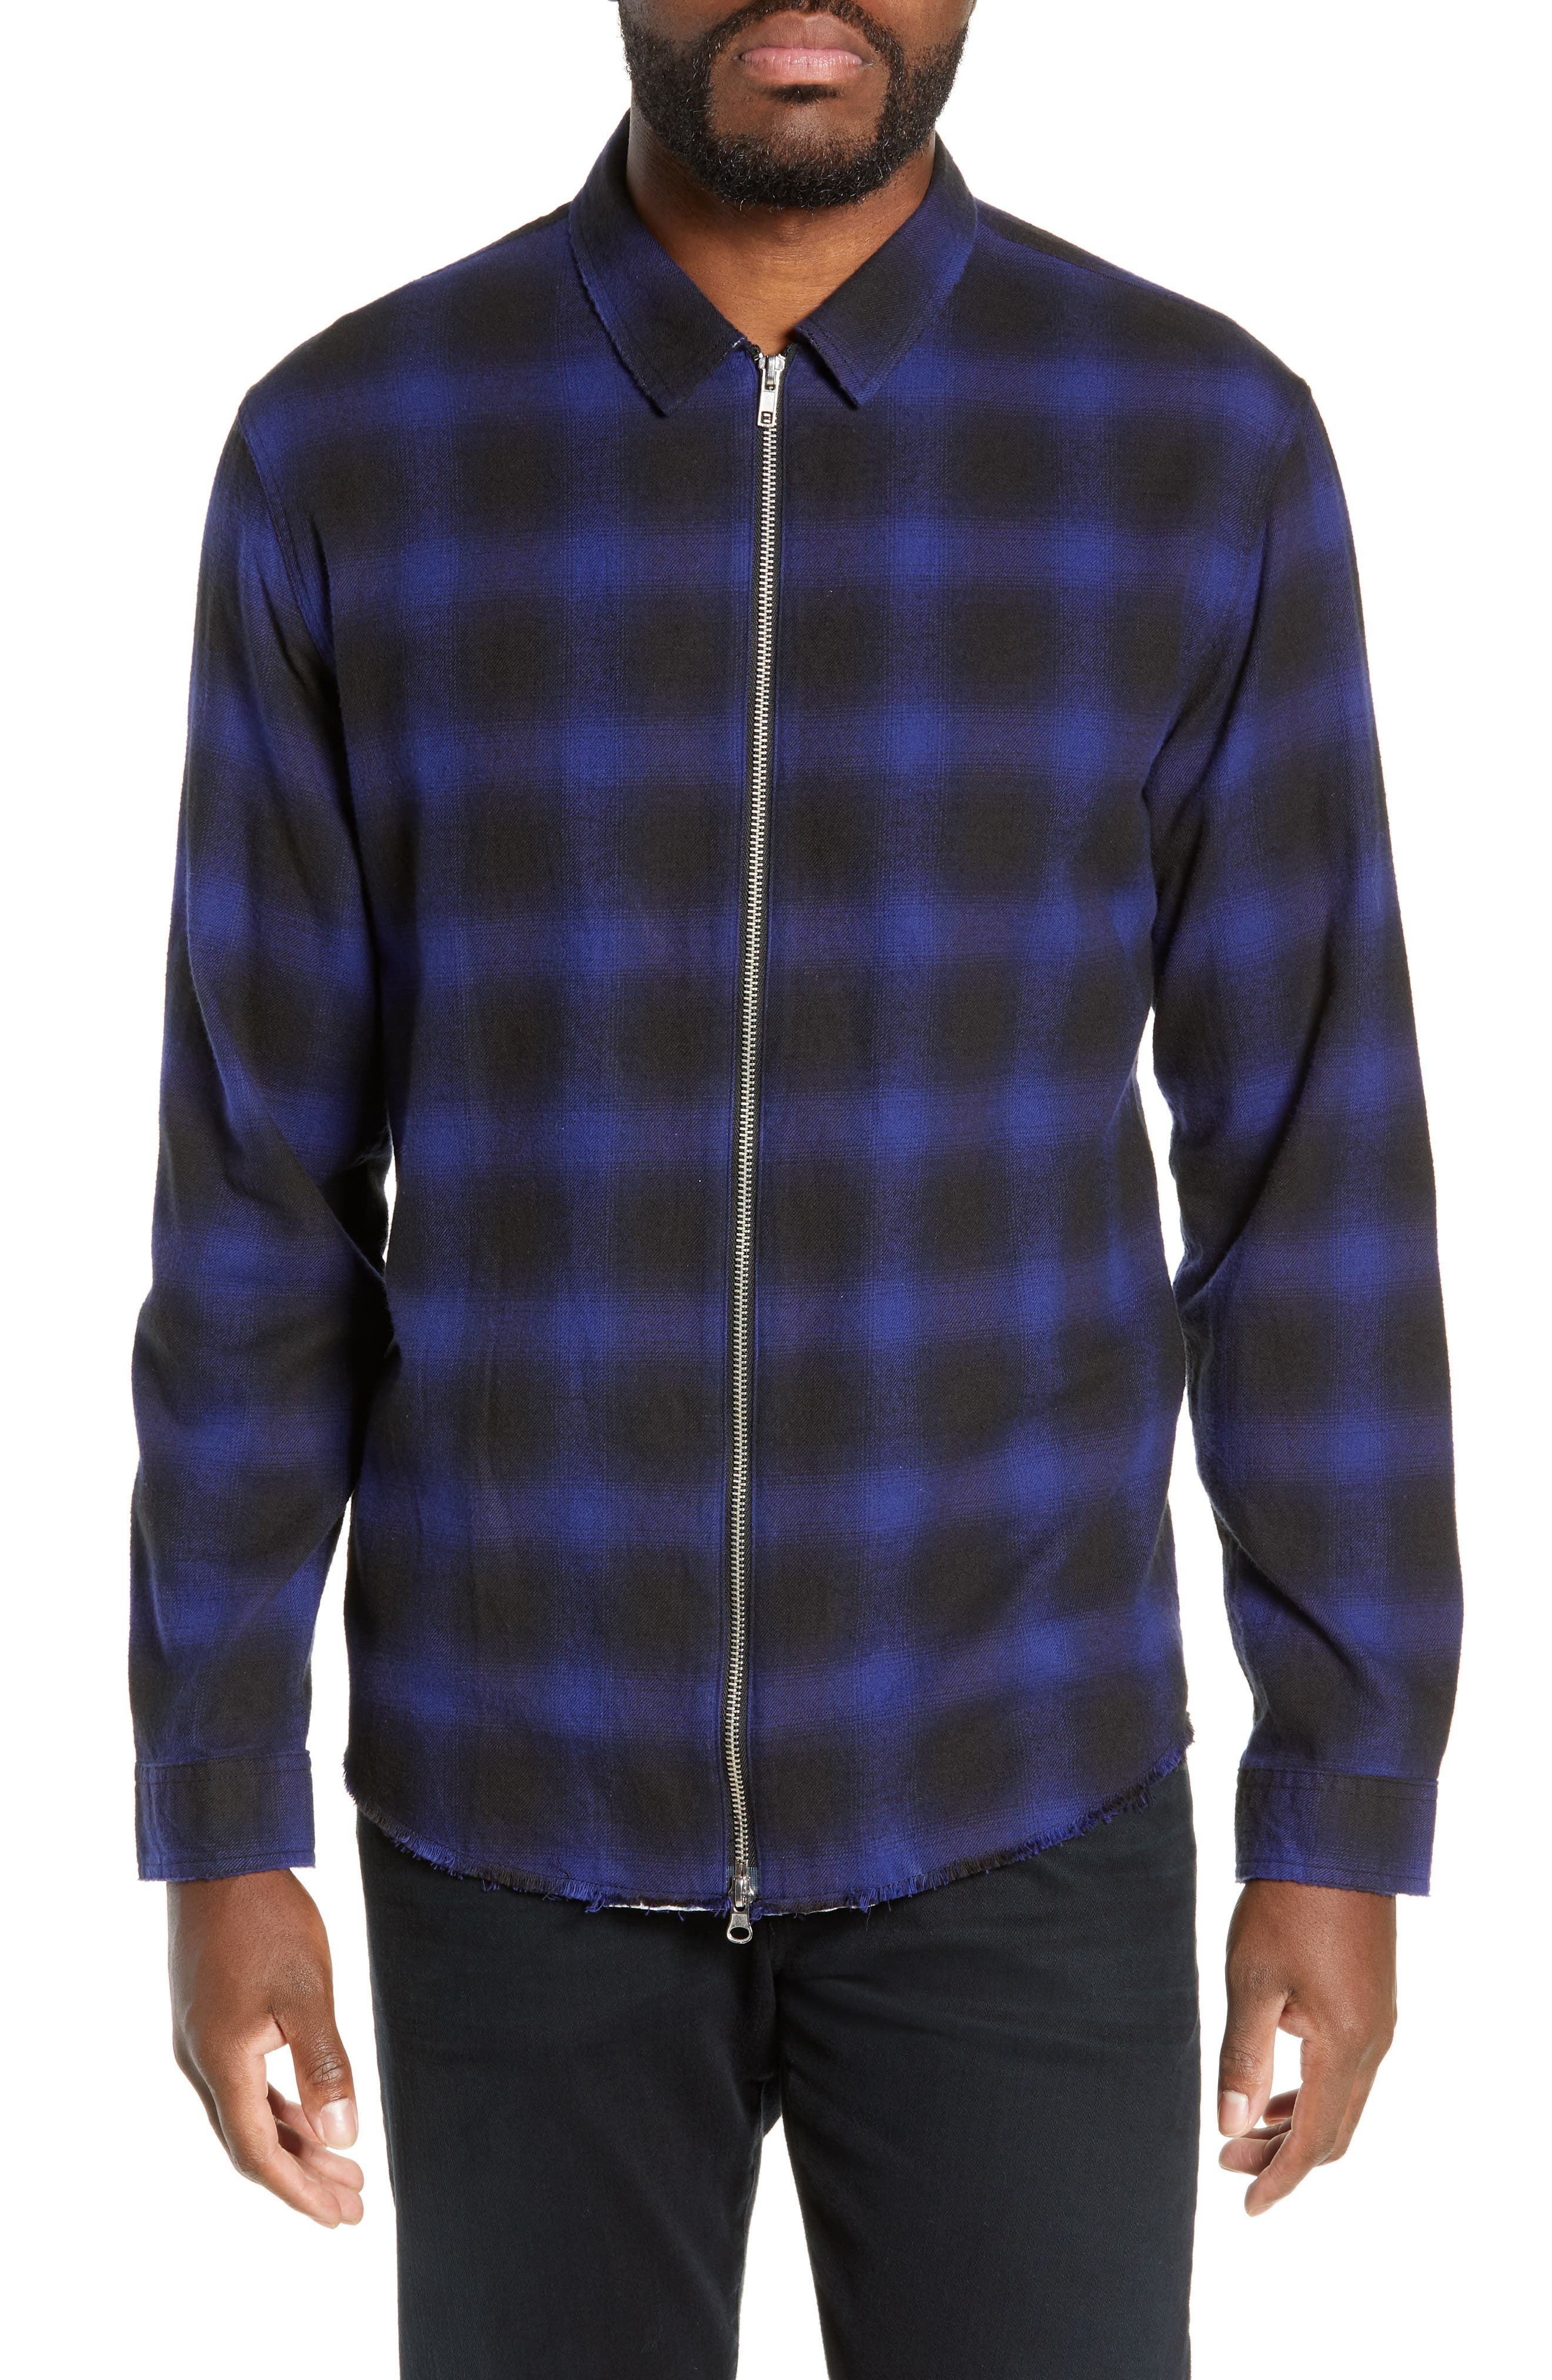 THE KOOPLES, Zip Flannel Jacket, Main thumbnail 1, color, BLUE BLACK